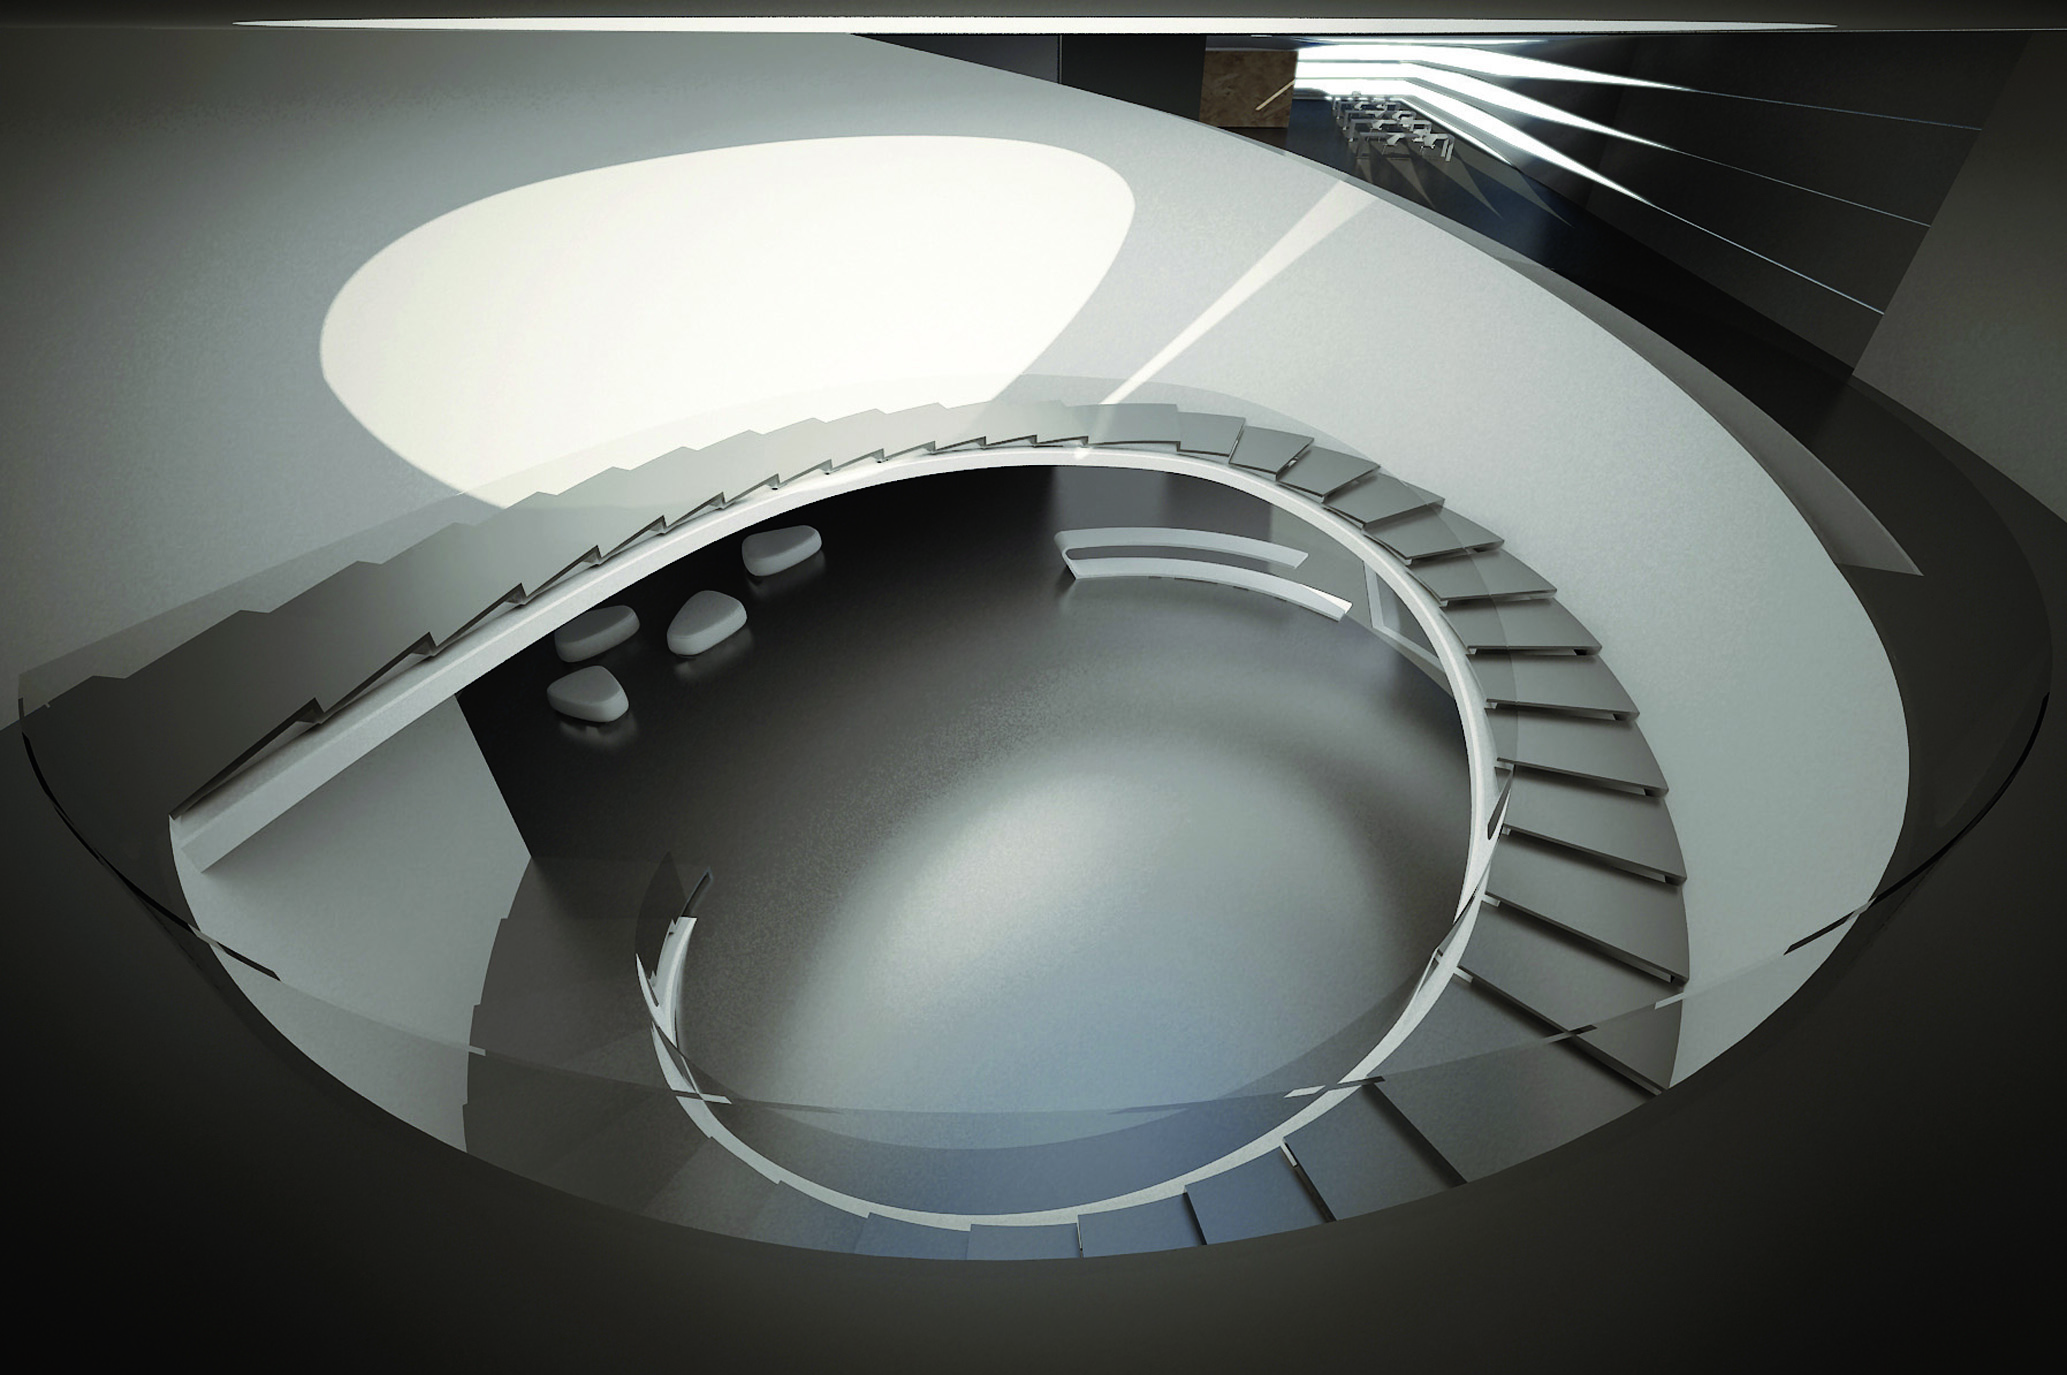 interior view- stair well